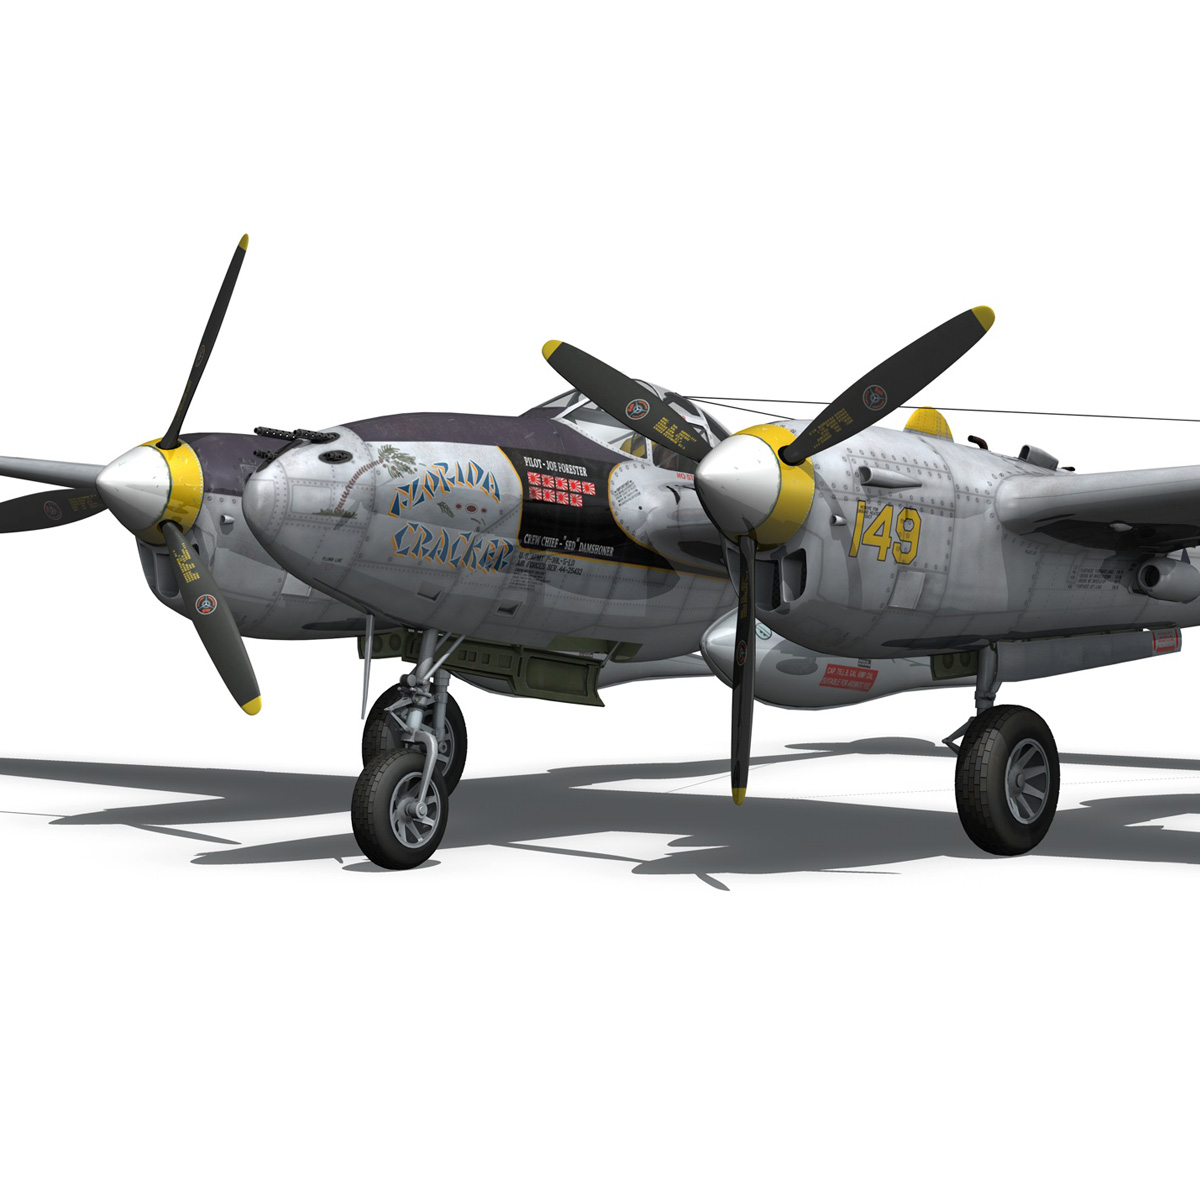 lockheed p-38 lightning – florida cracker 3d model fbx c4d lwo obj 279423